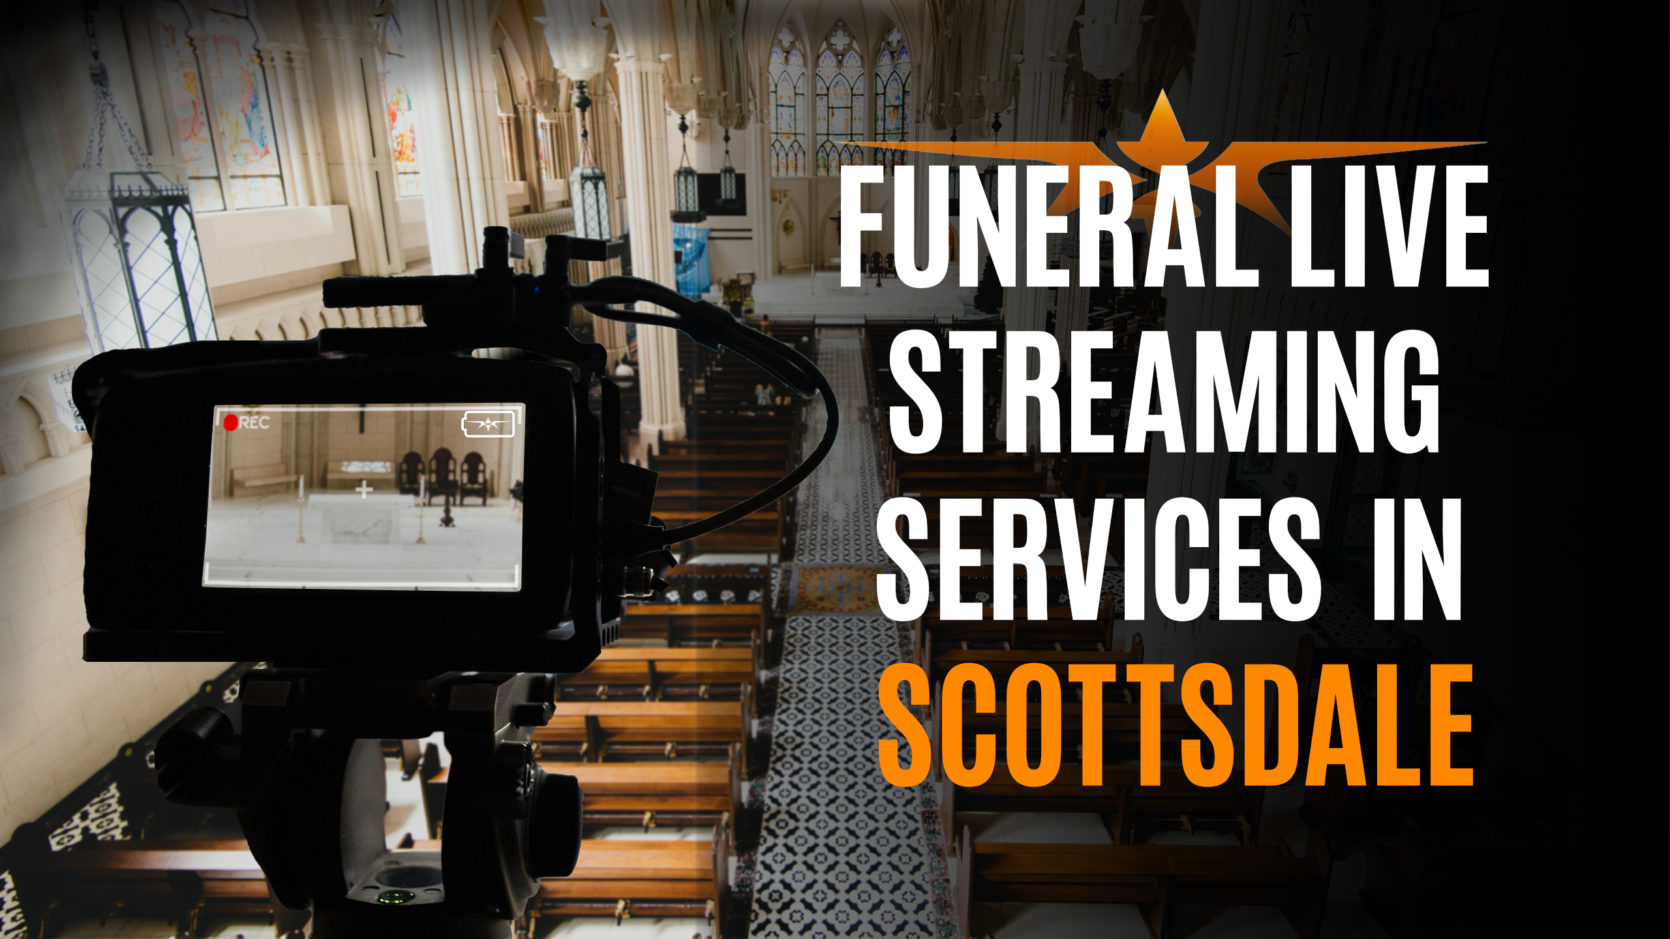 Funeral Live Streaming Services in Scottsdale